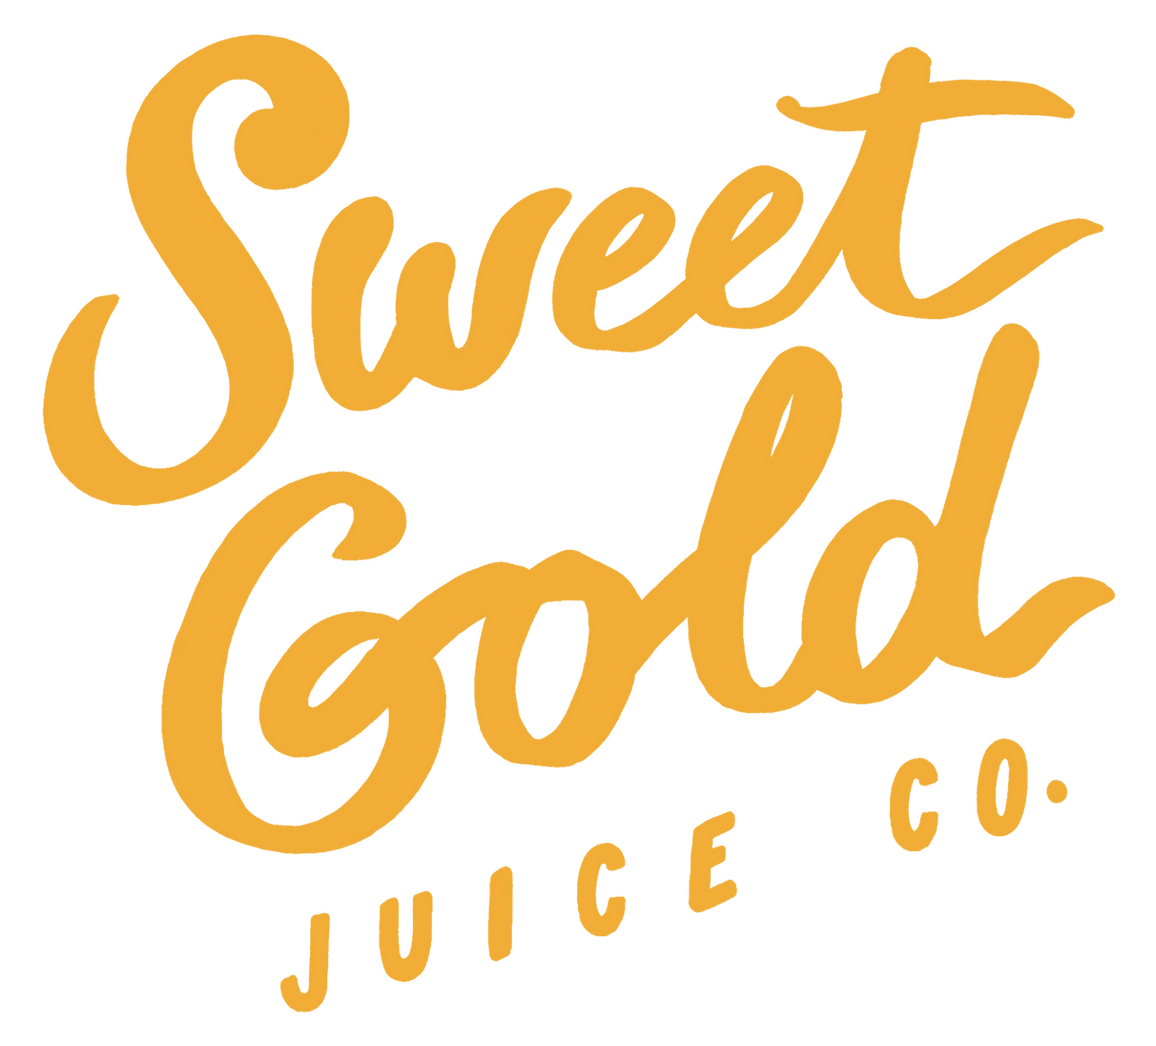 Sweet Gold Juice Co.